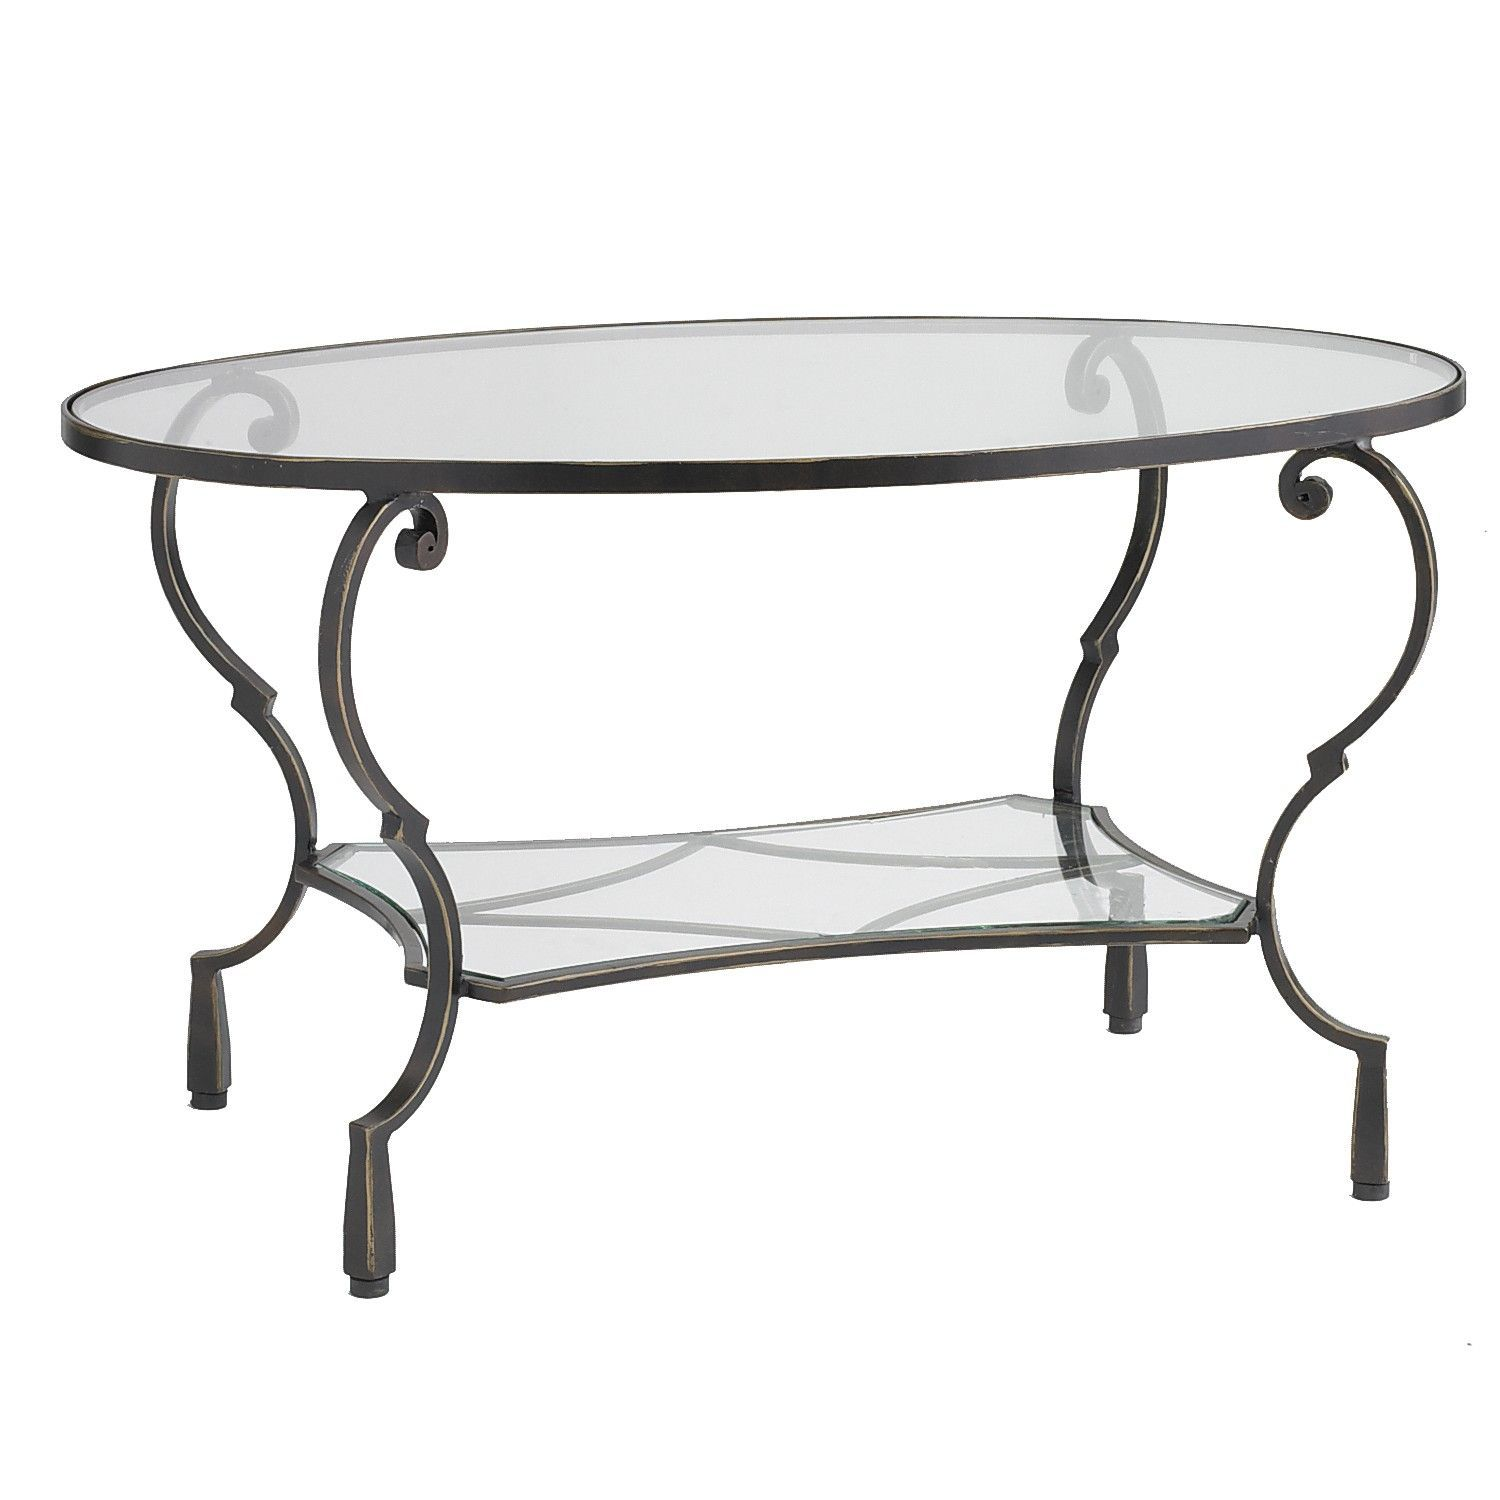 Chasca Glass Top Brown Oval Coffee Table